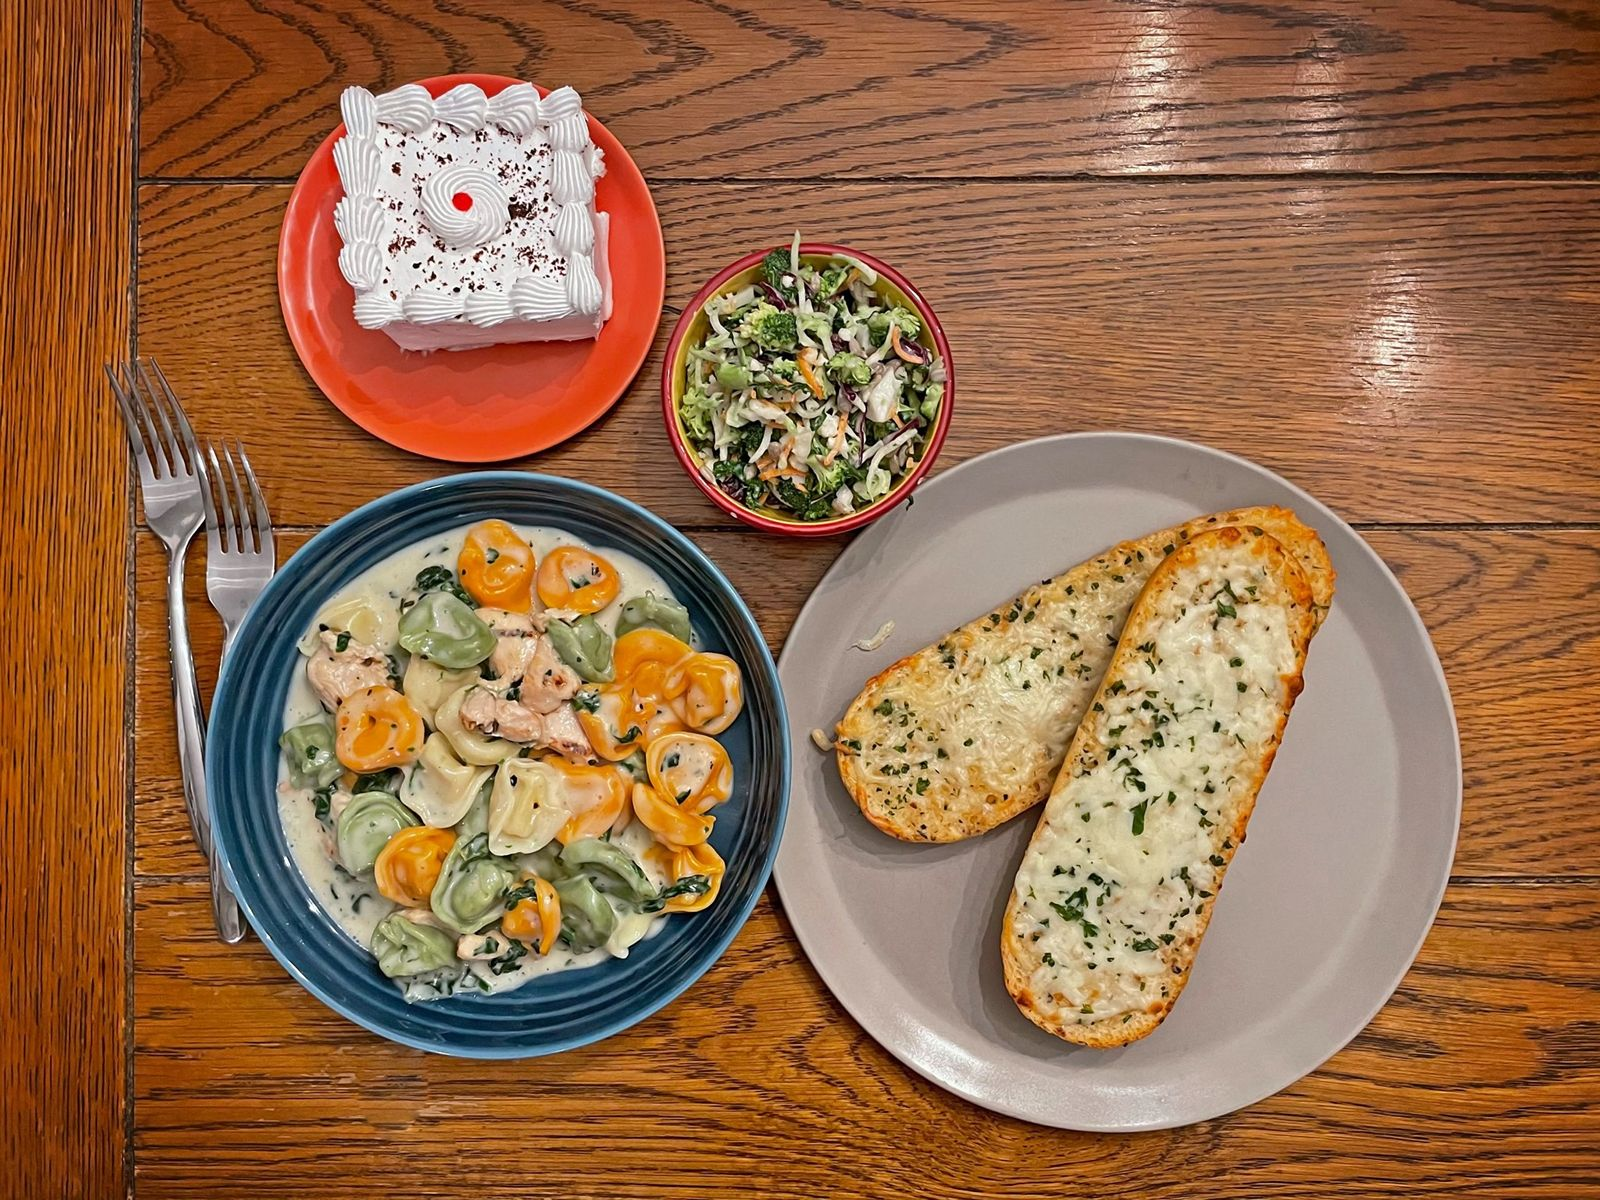 Each Bavarian Boxed Bundle meal includes an entrée, side, baked good and dessert. Pictured here is the restaurant's delicious cheese tortellini and spinach alfredo with grilled chicken, garlic bread, broccoli crunch salad and torte.